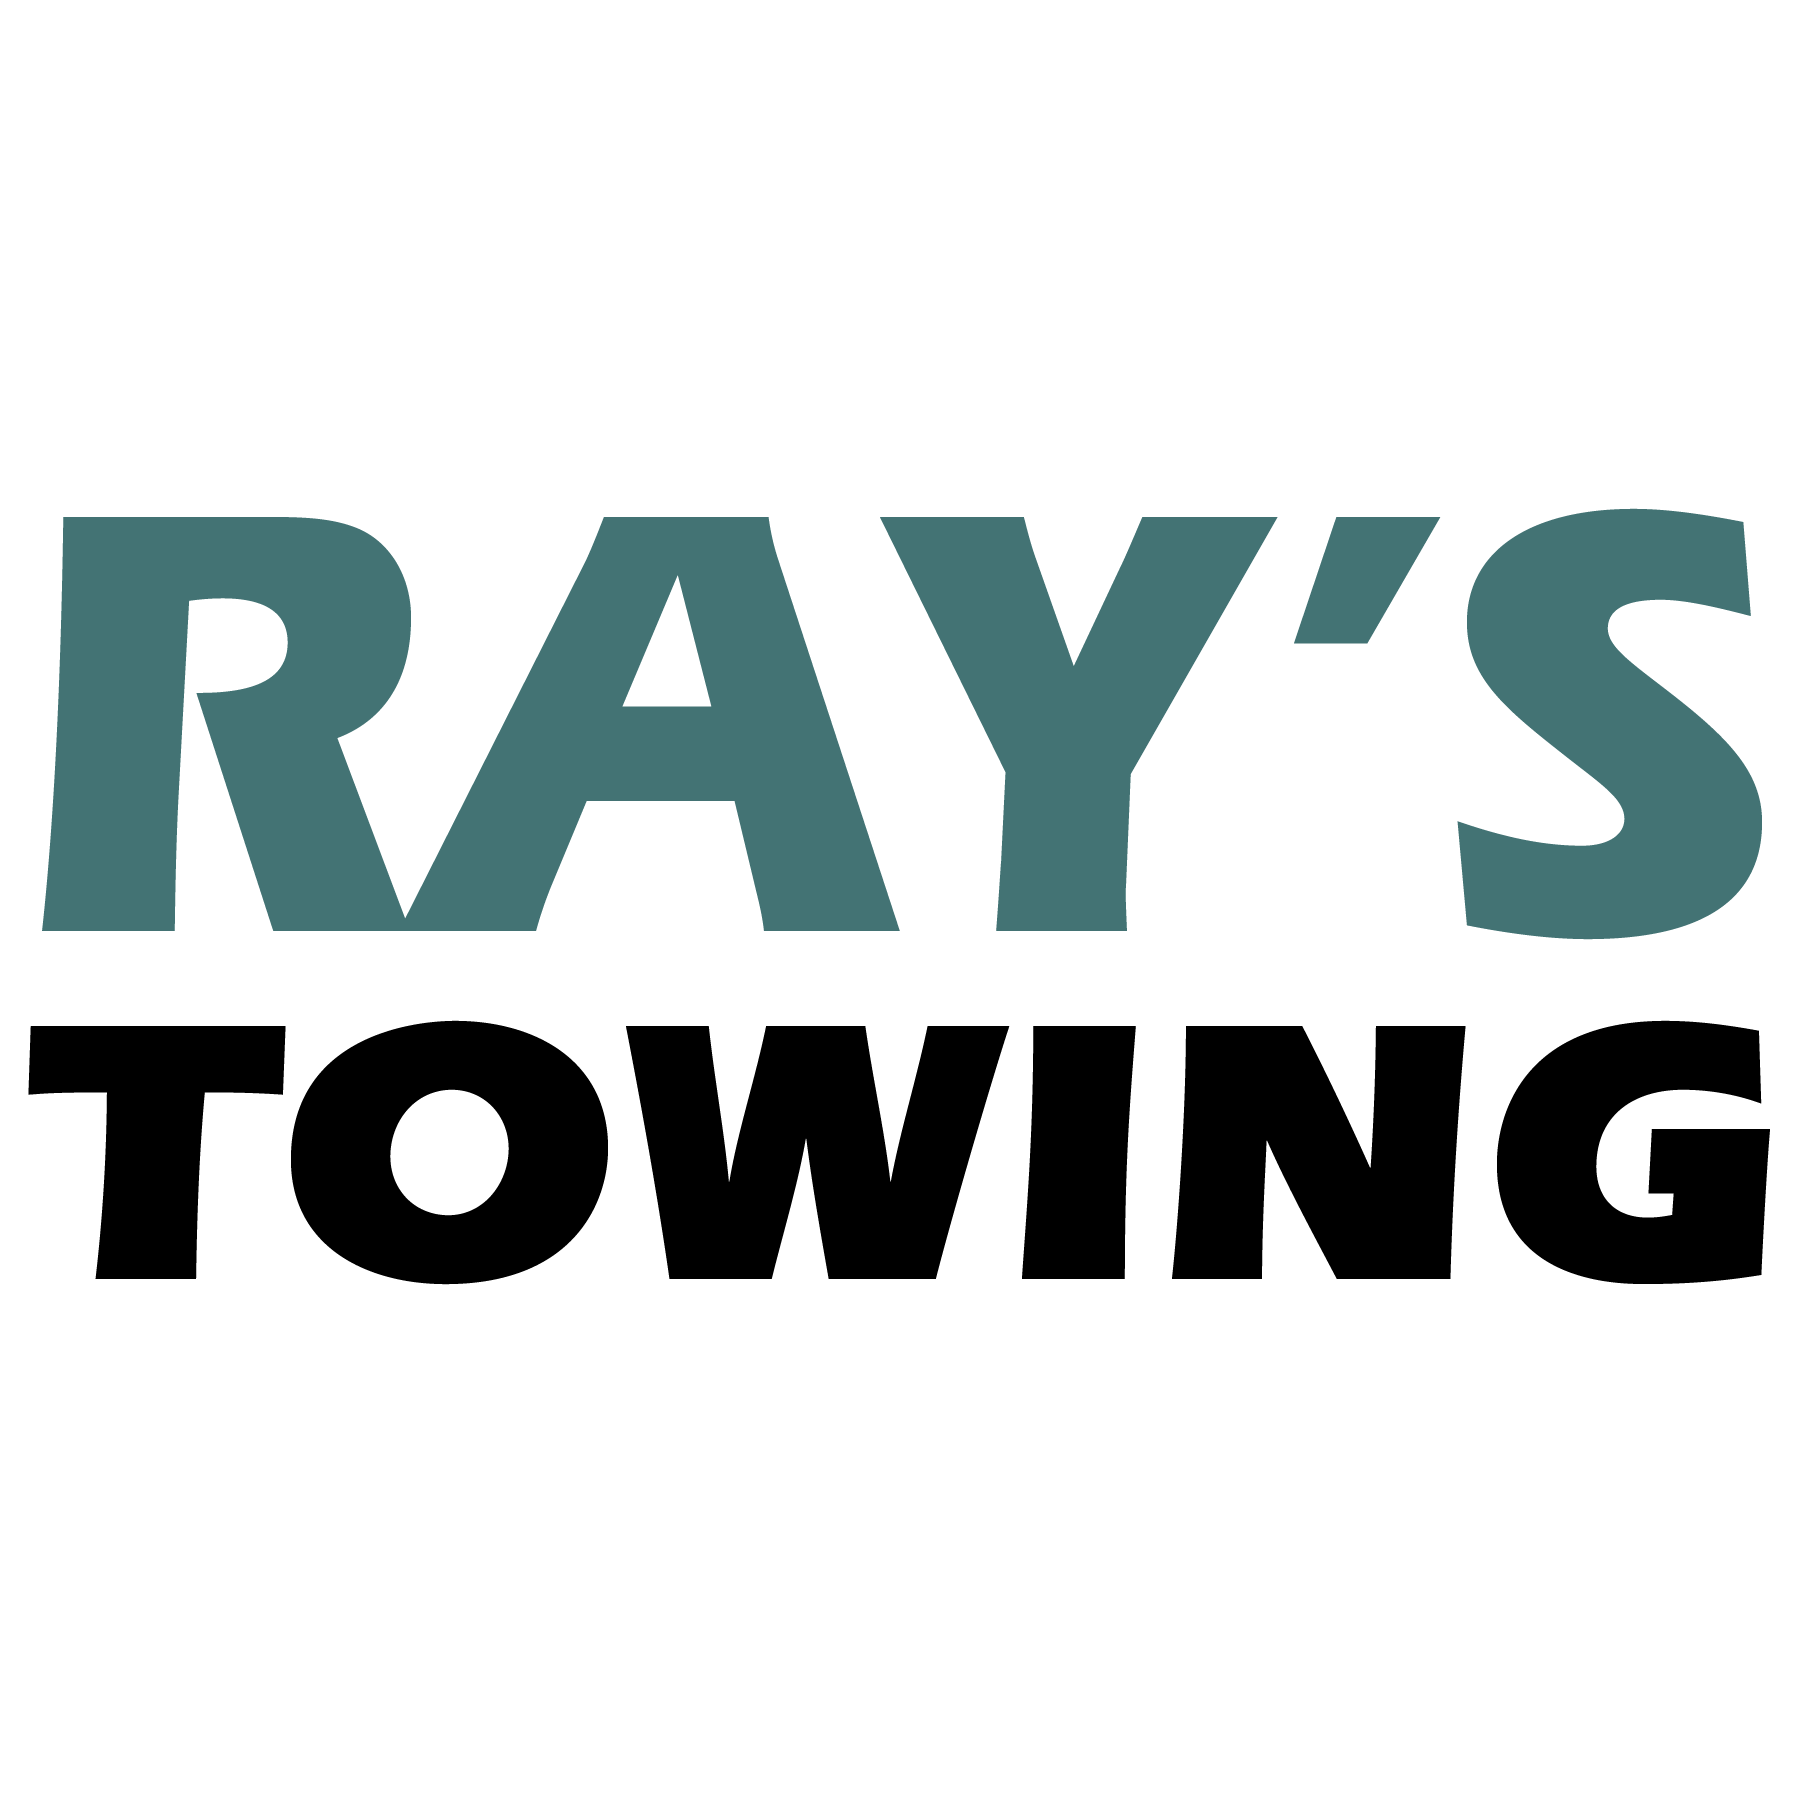 Ray's Towing Services image 2